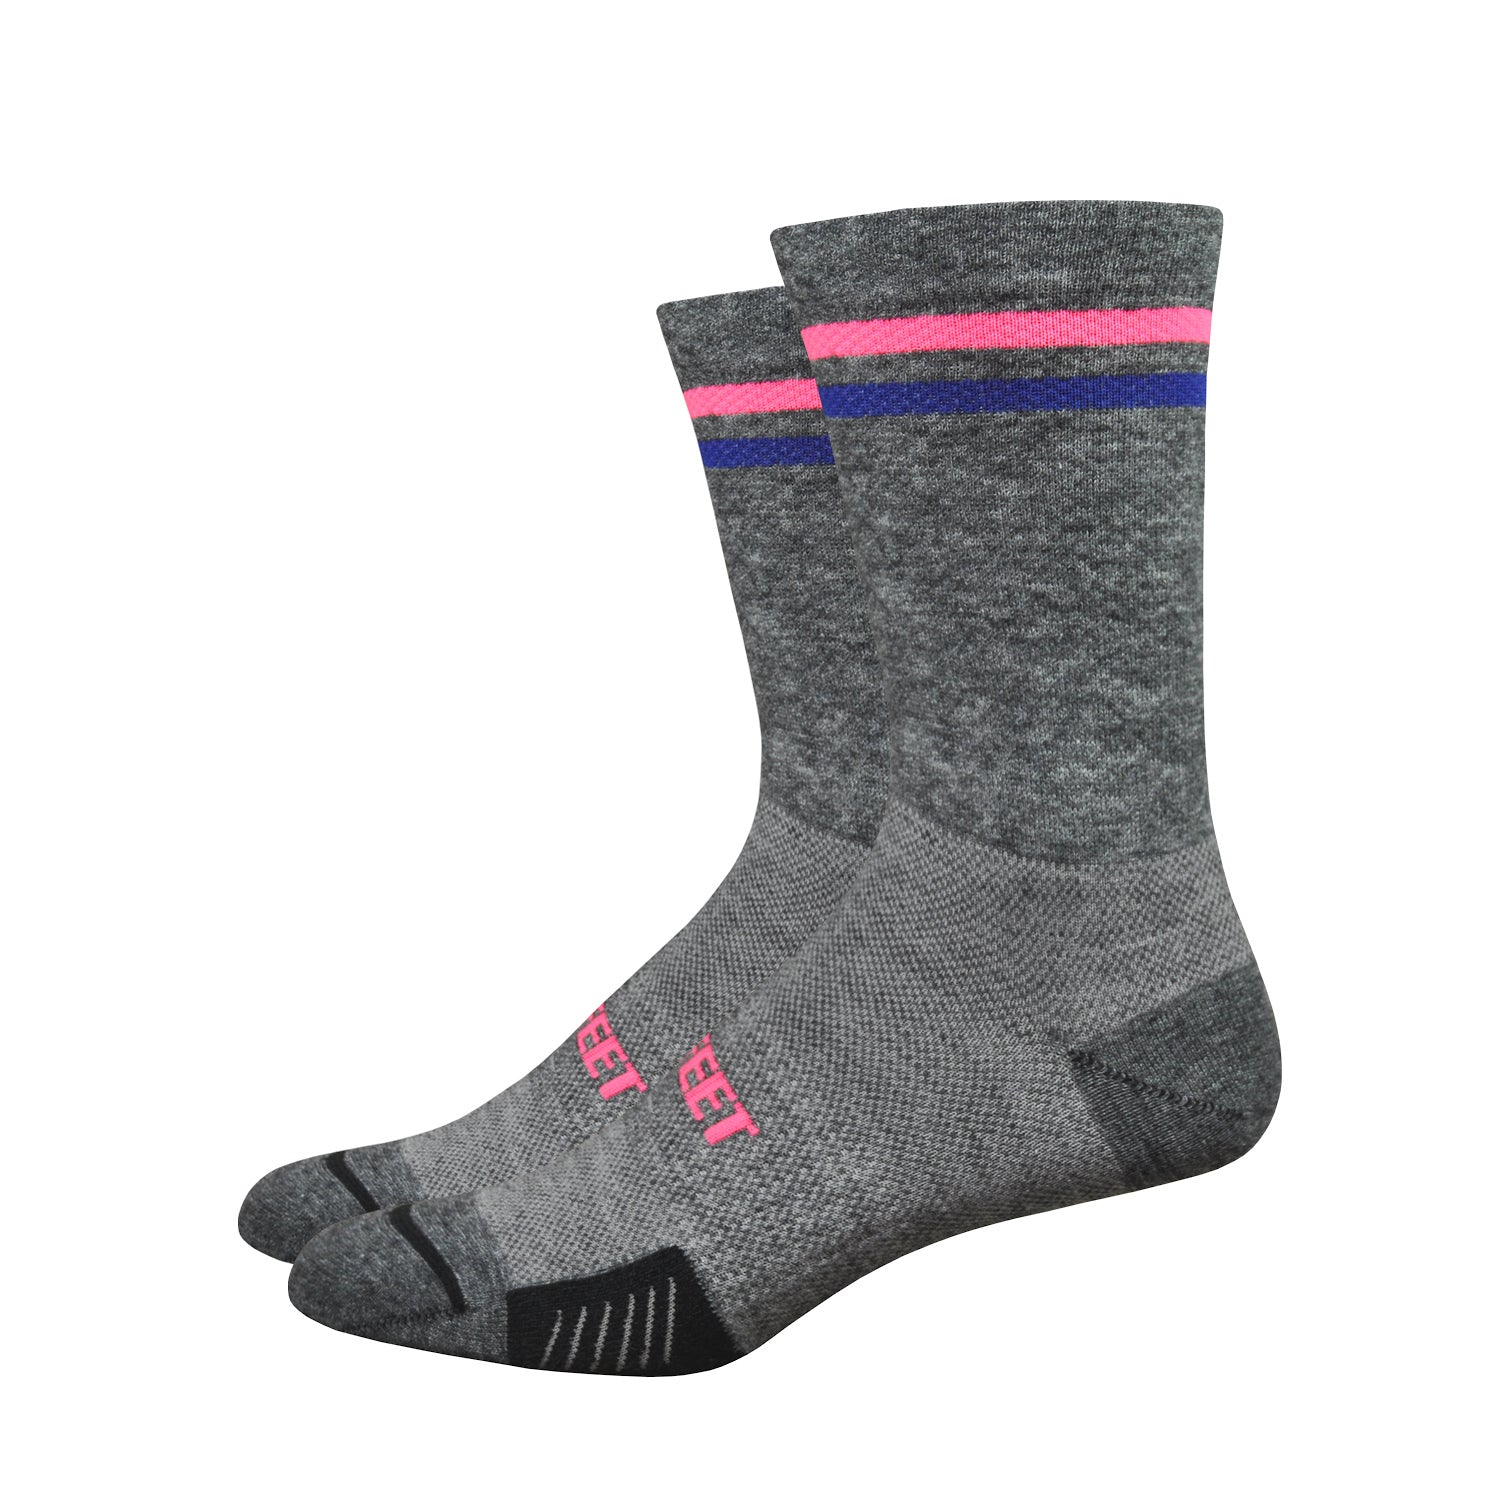 "Cyclismo Wool Comp 6"" Gravel Grey/Hi-Vis Pink/Light Navy"